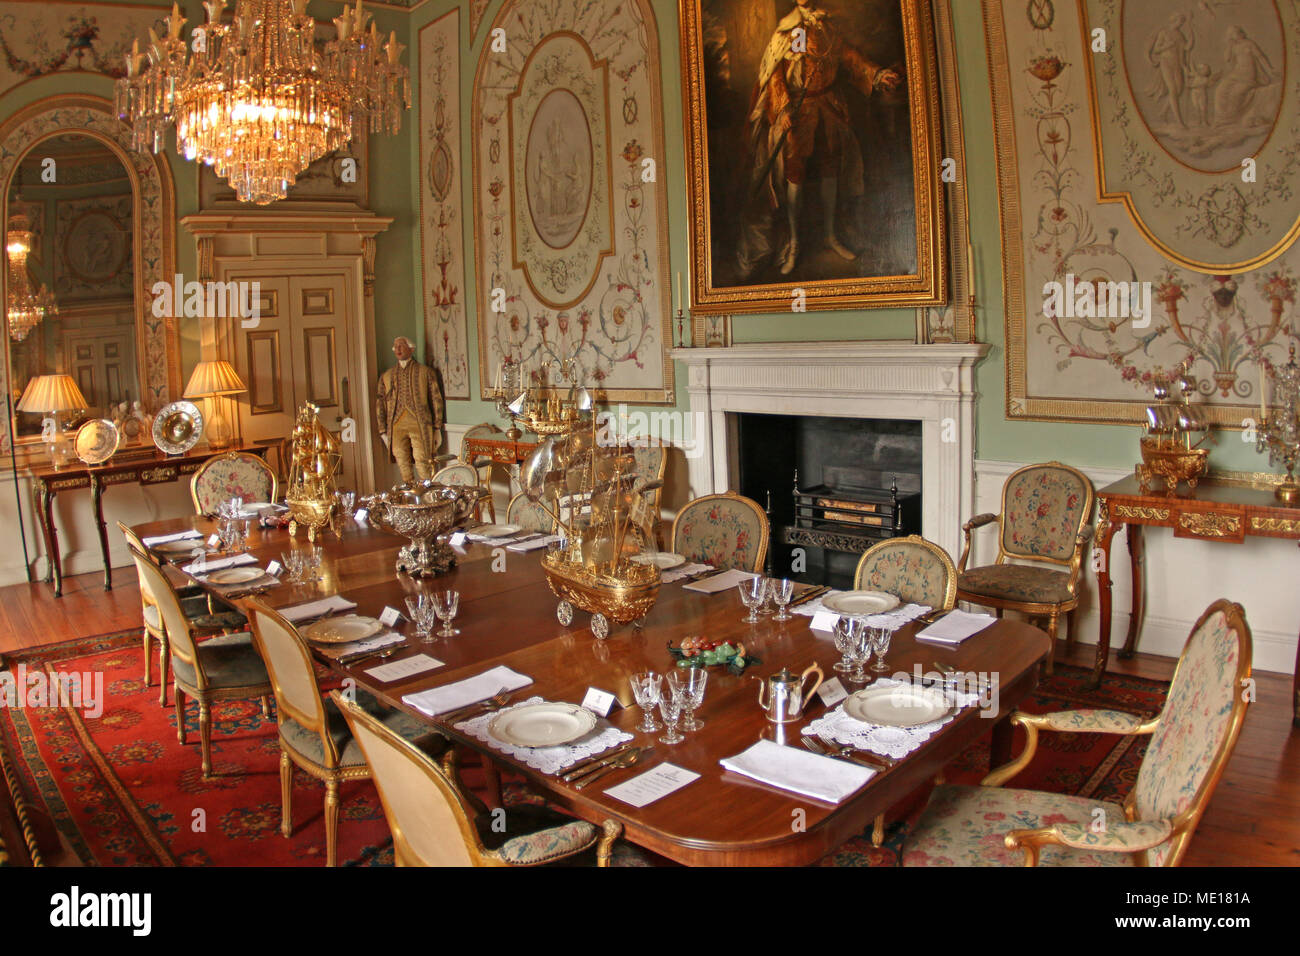 Castle Dining Room - Stock Image